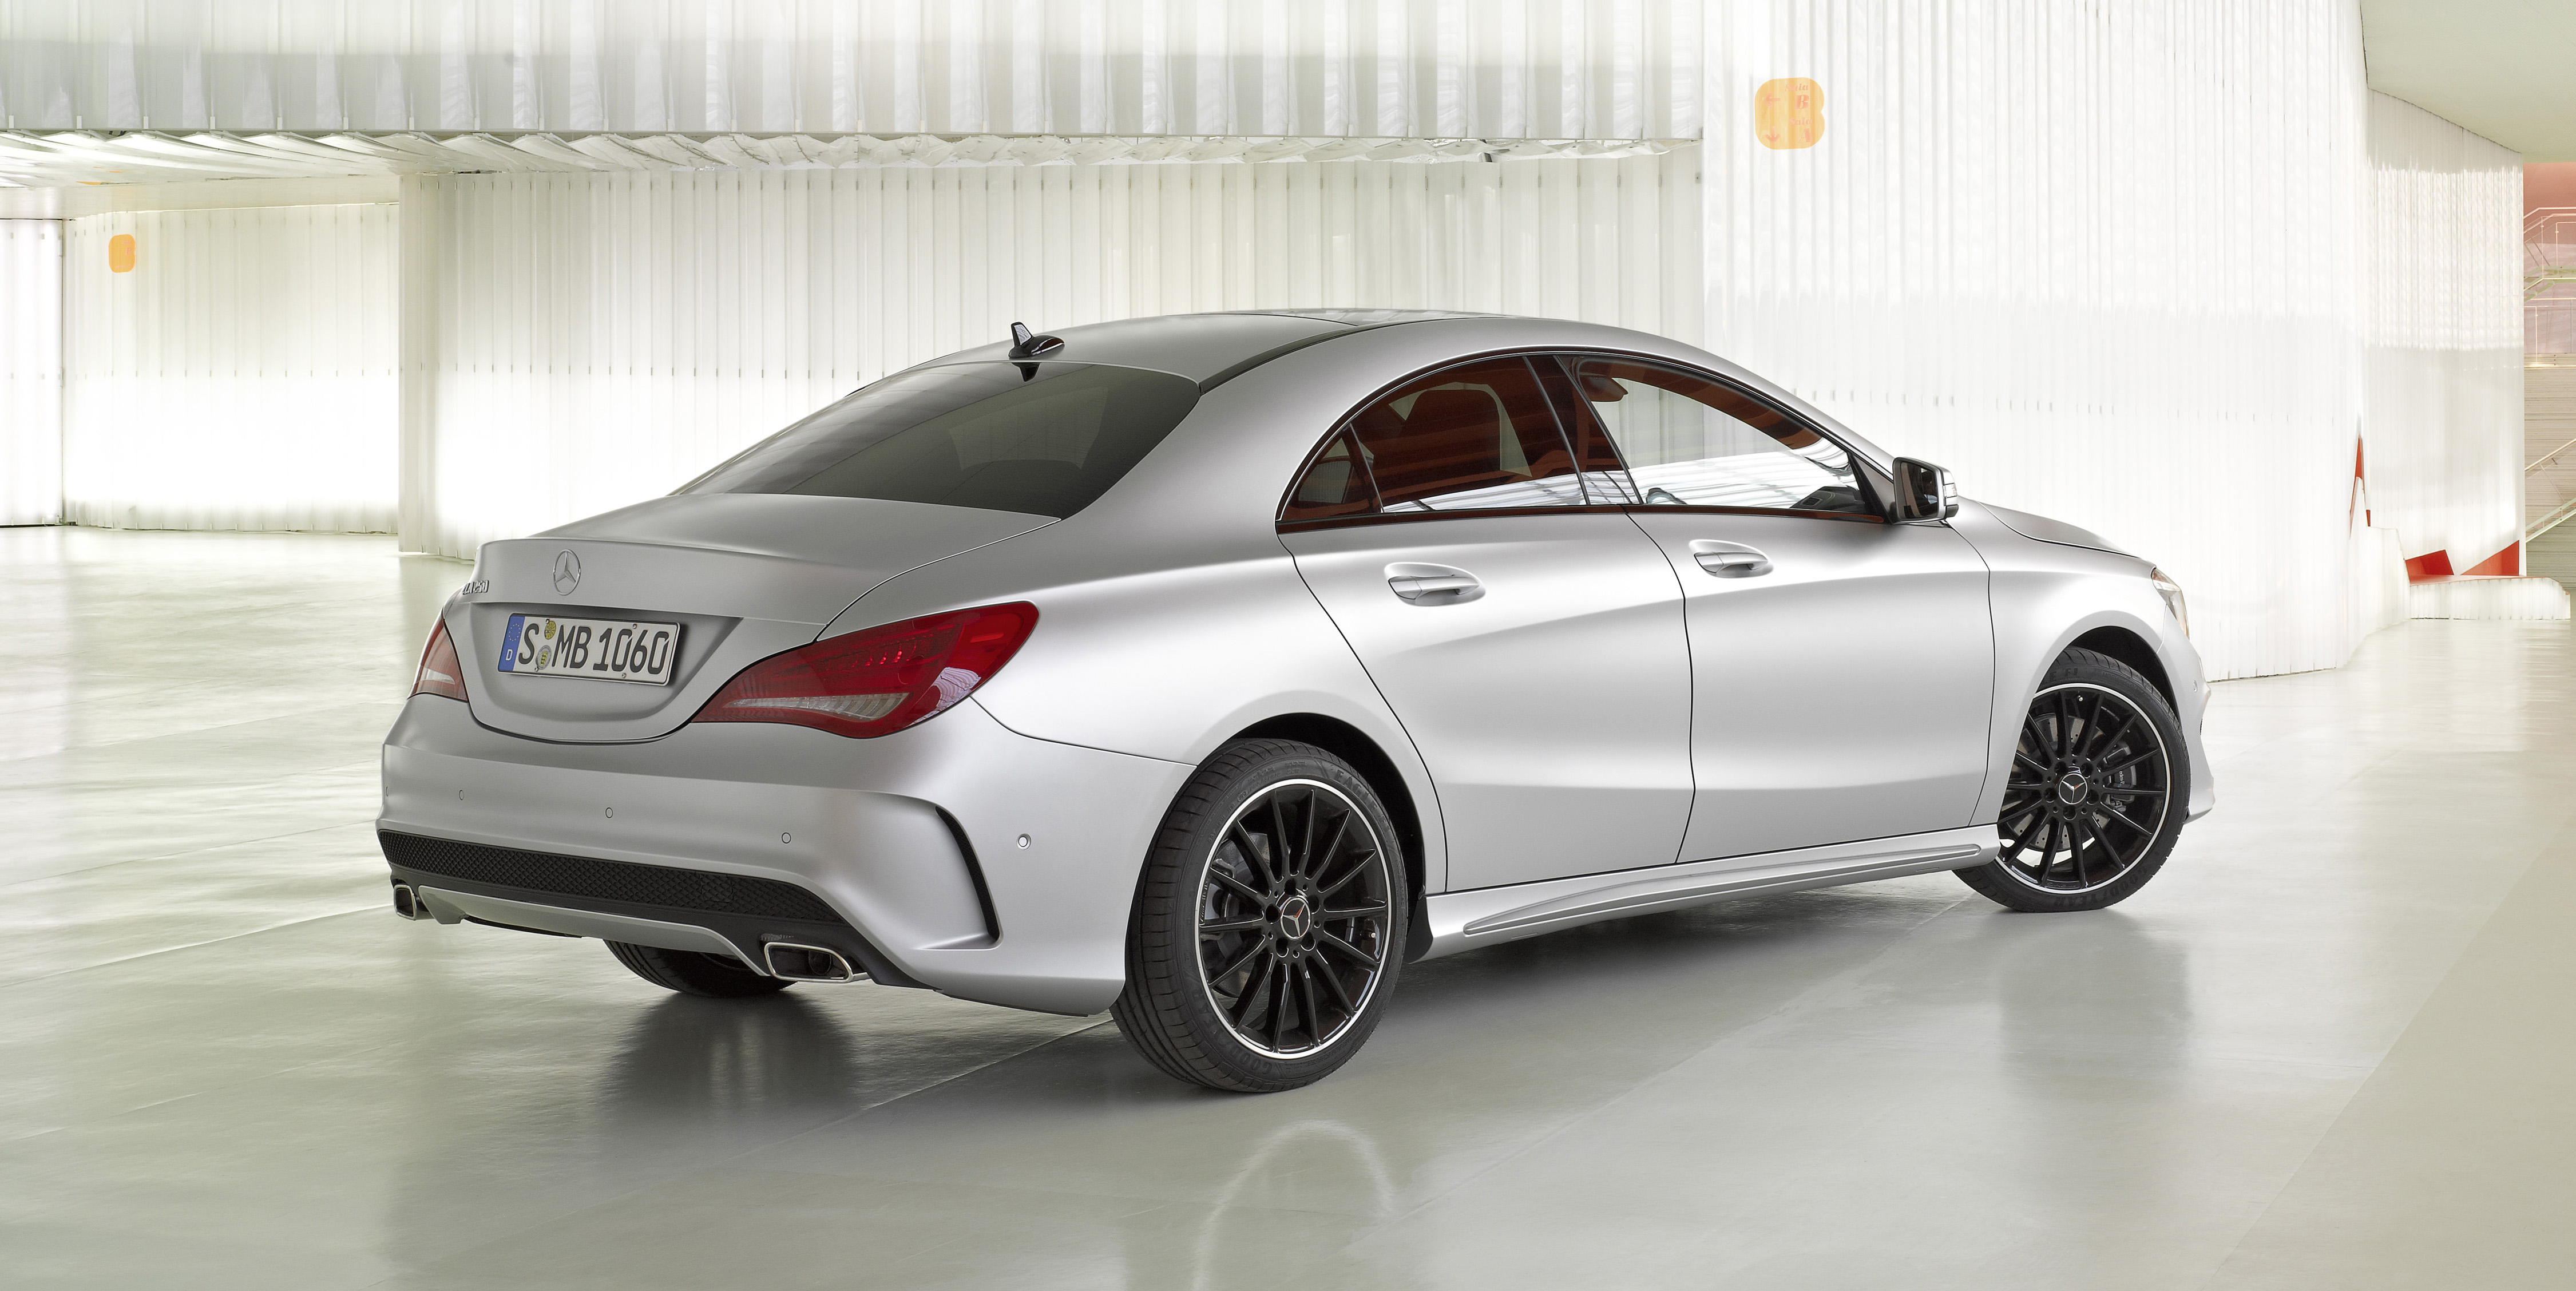 New Mercedes Benz Cla Class Makes Its Debut Image 149601